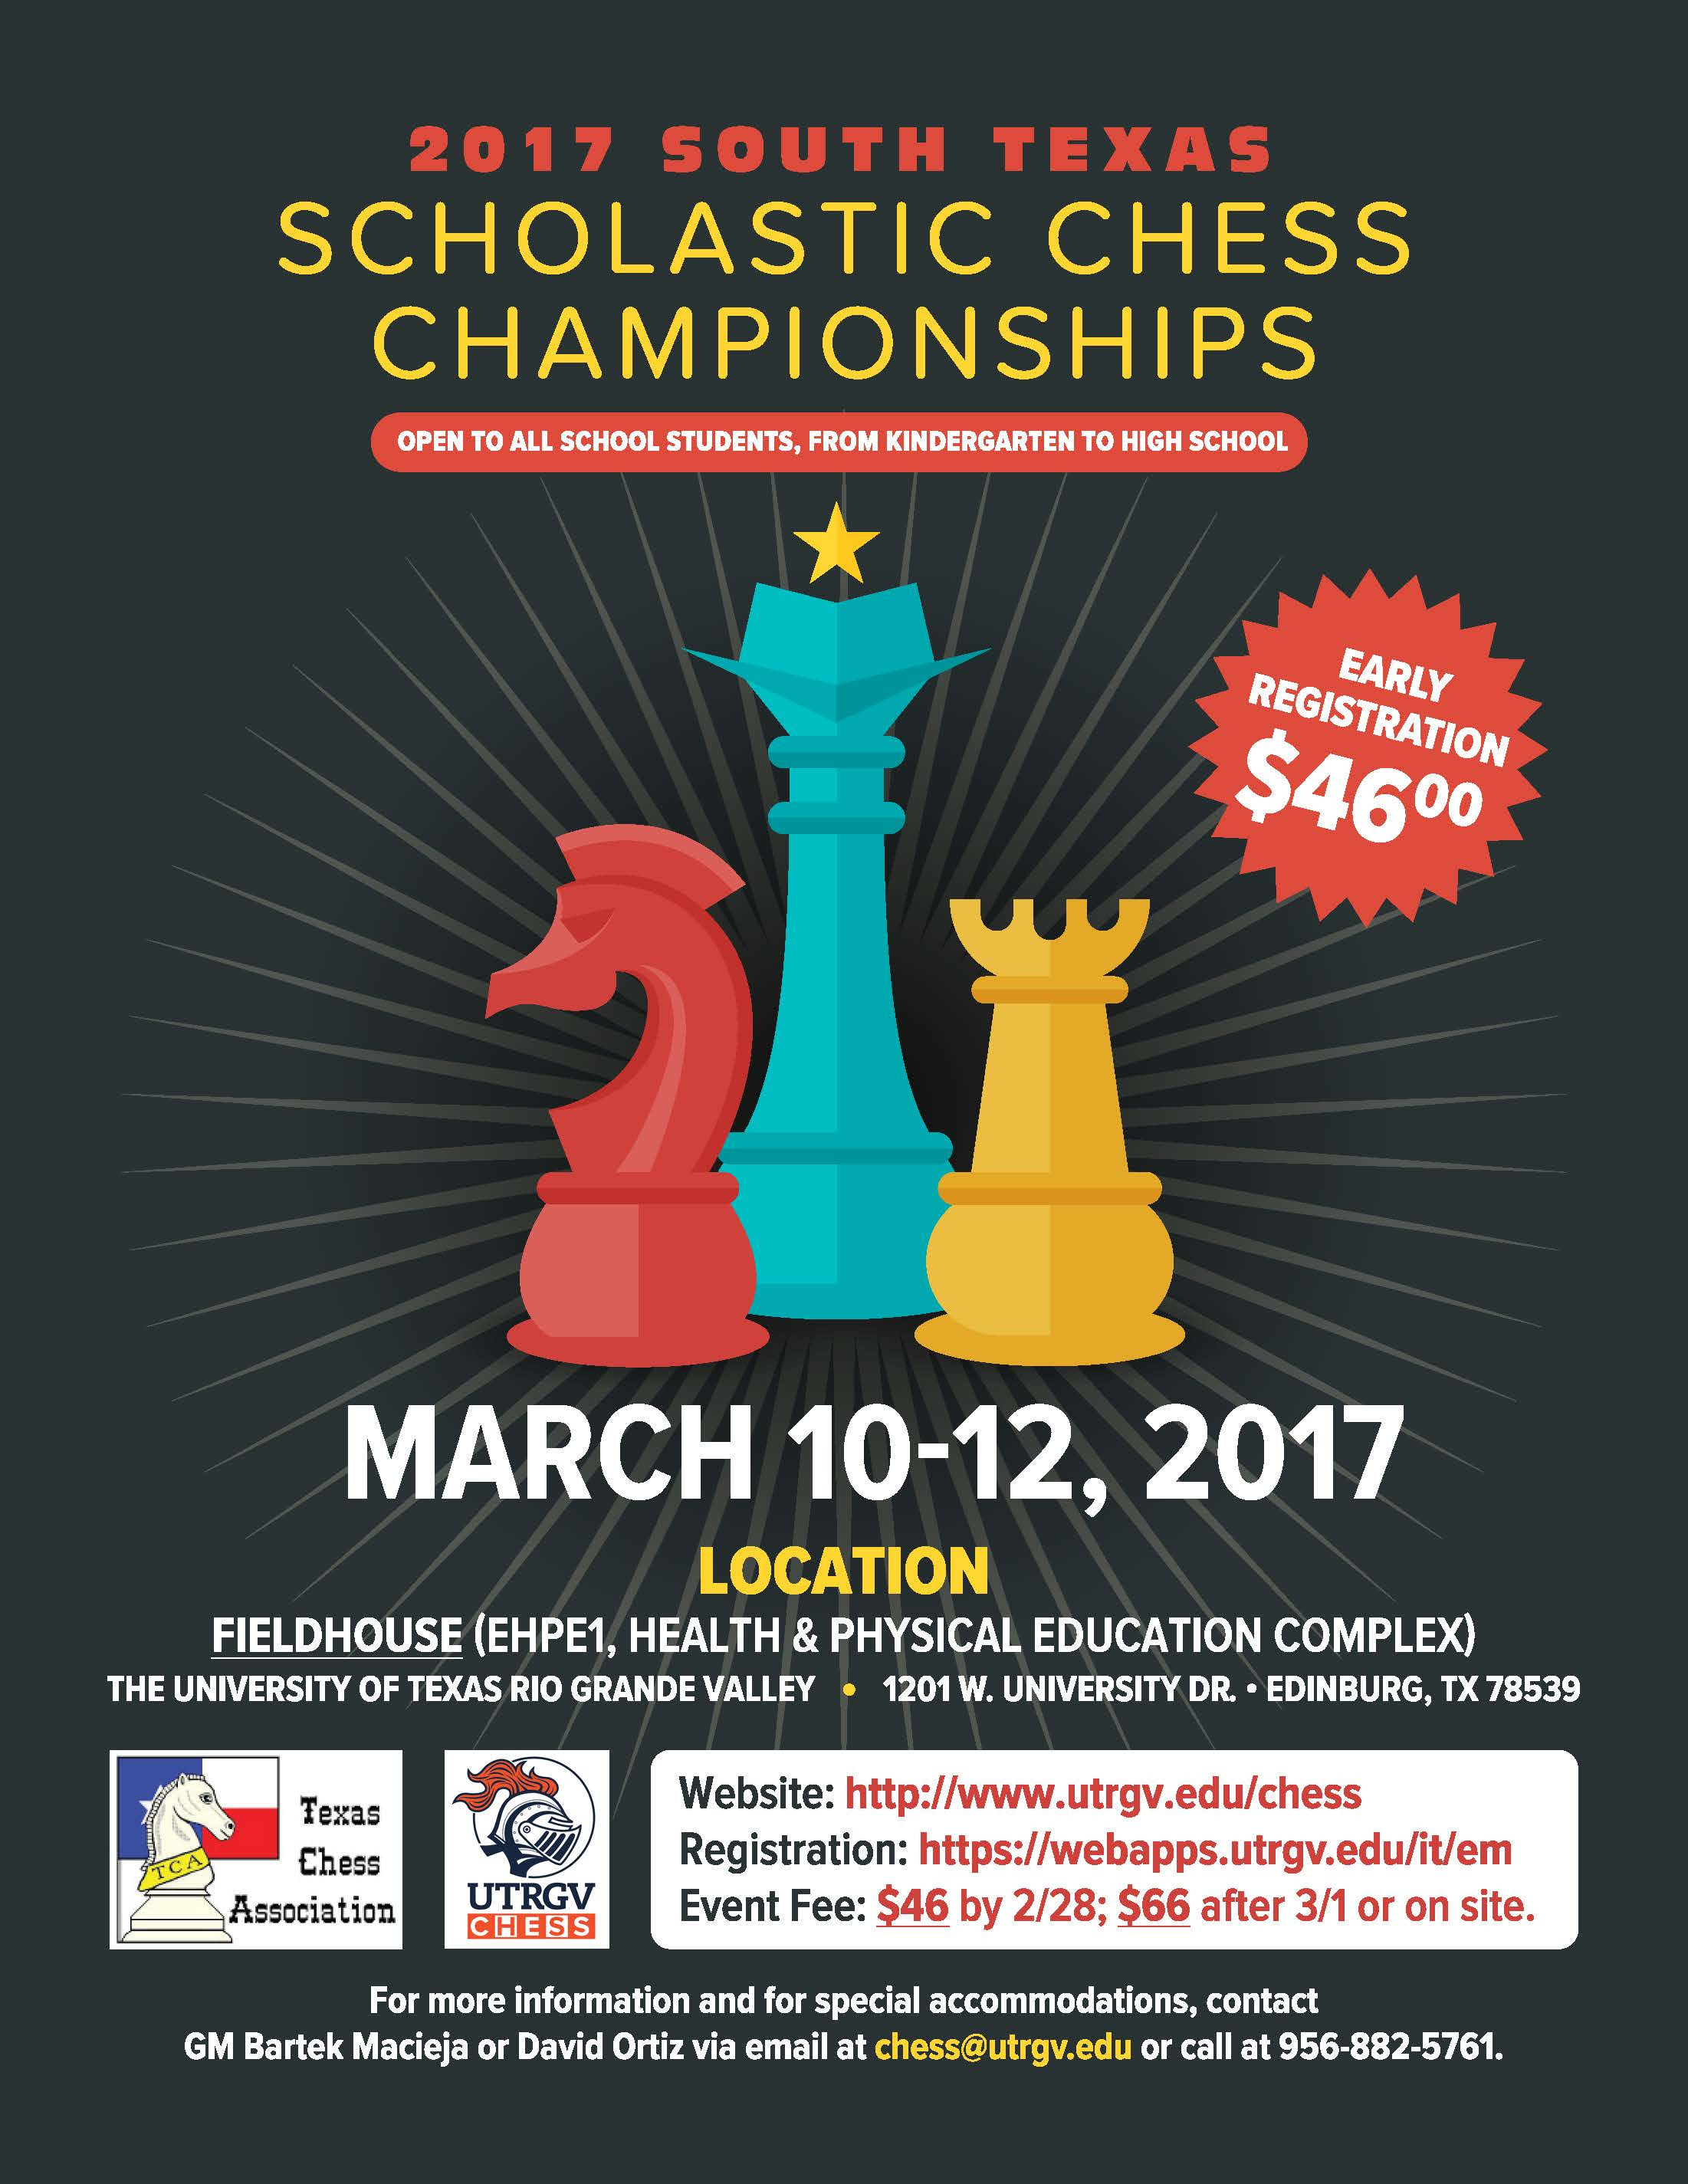 2017 South Texas Scholastic Chess Championships Flyer